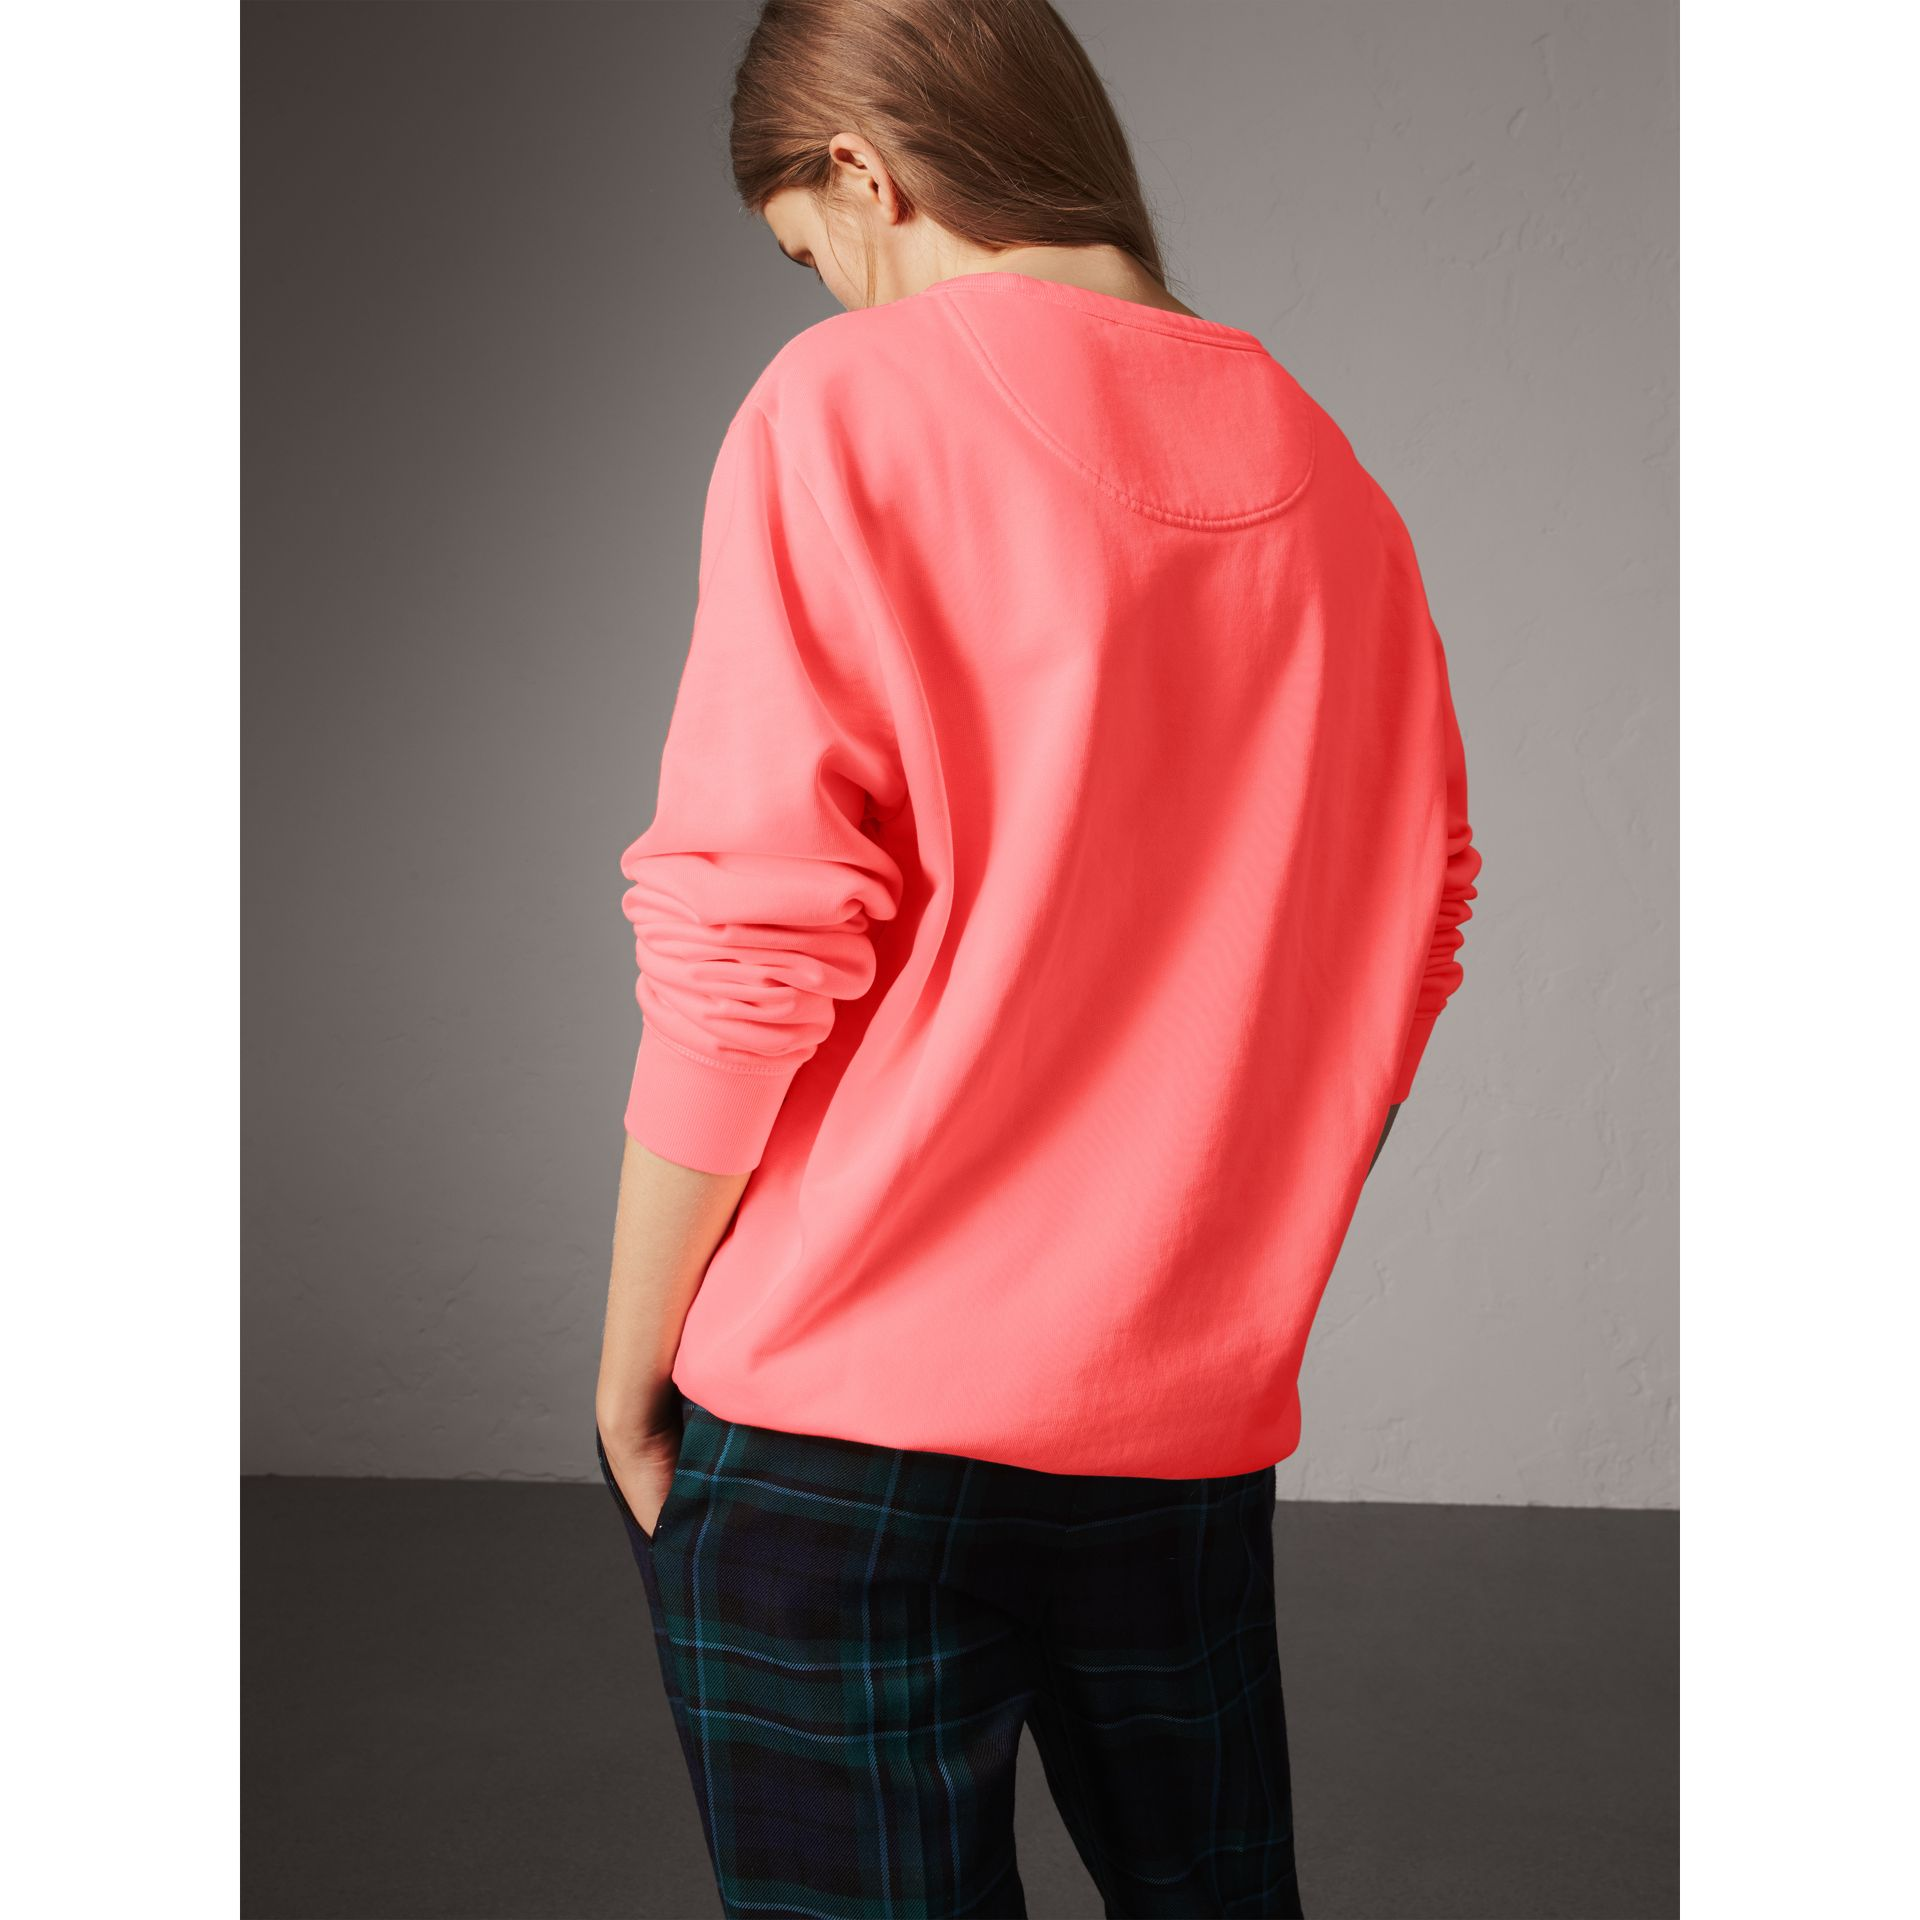 Doodle Print Cotton Sweatshirt in Bright Clementine - Women | Burberry Canada - gallery image 2